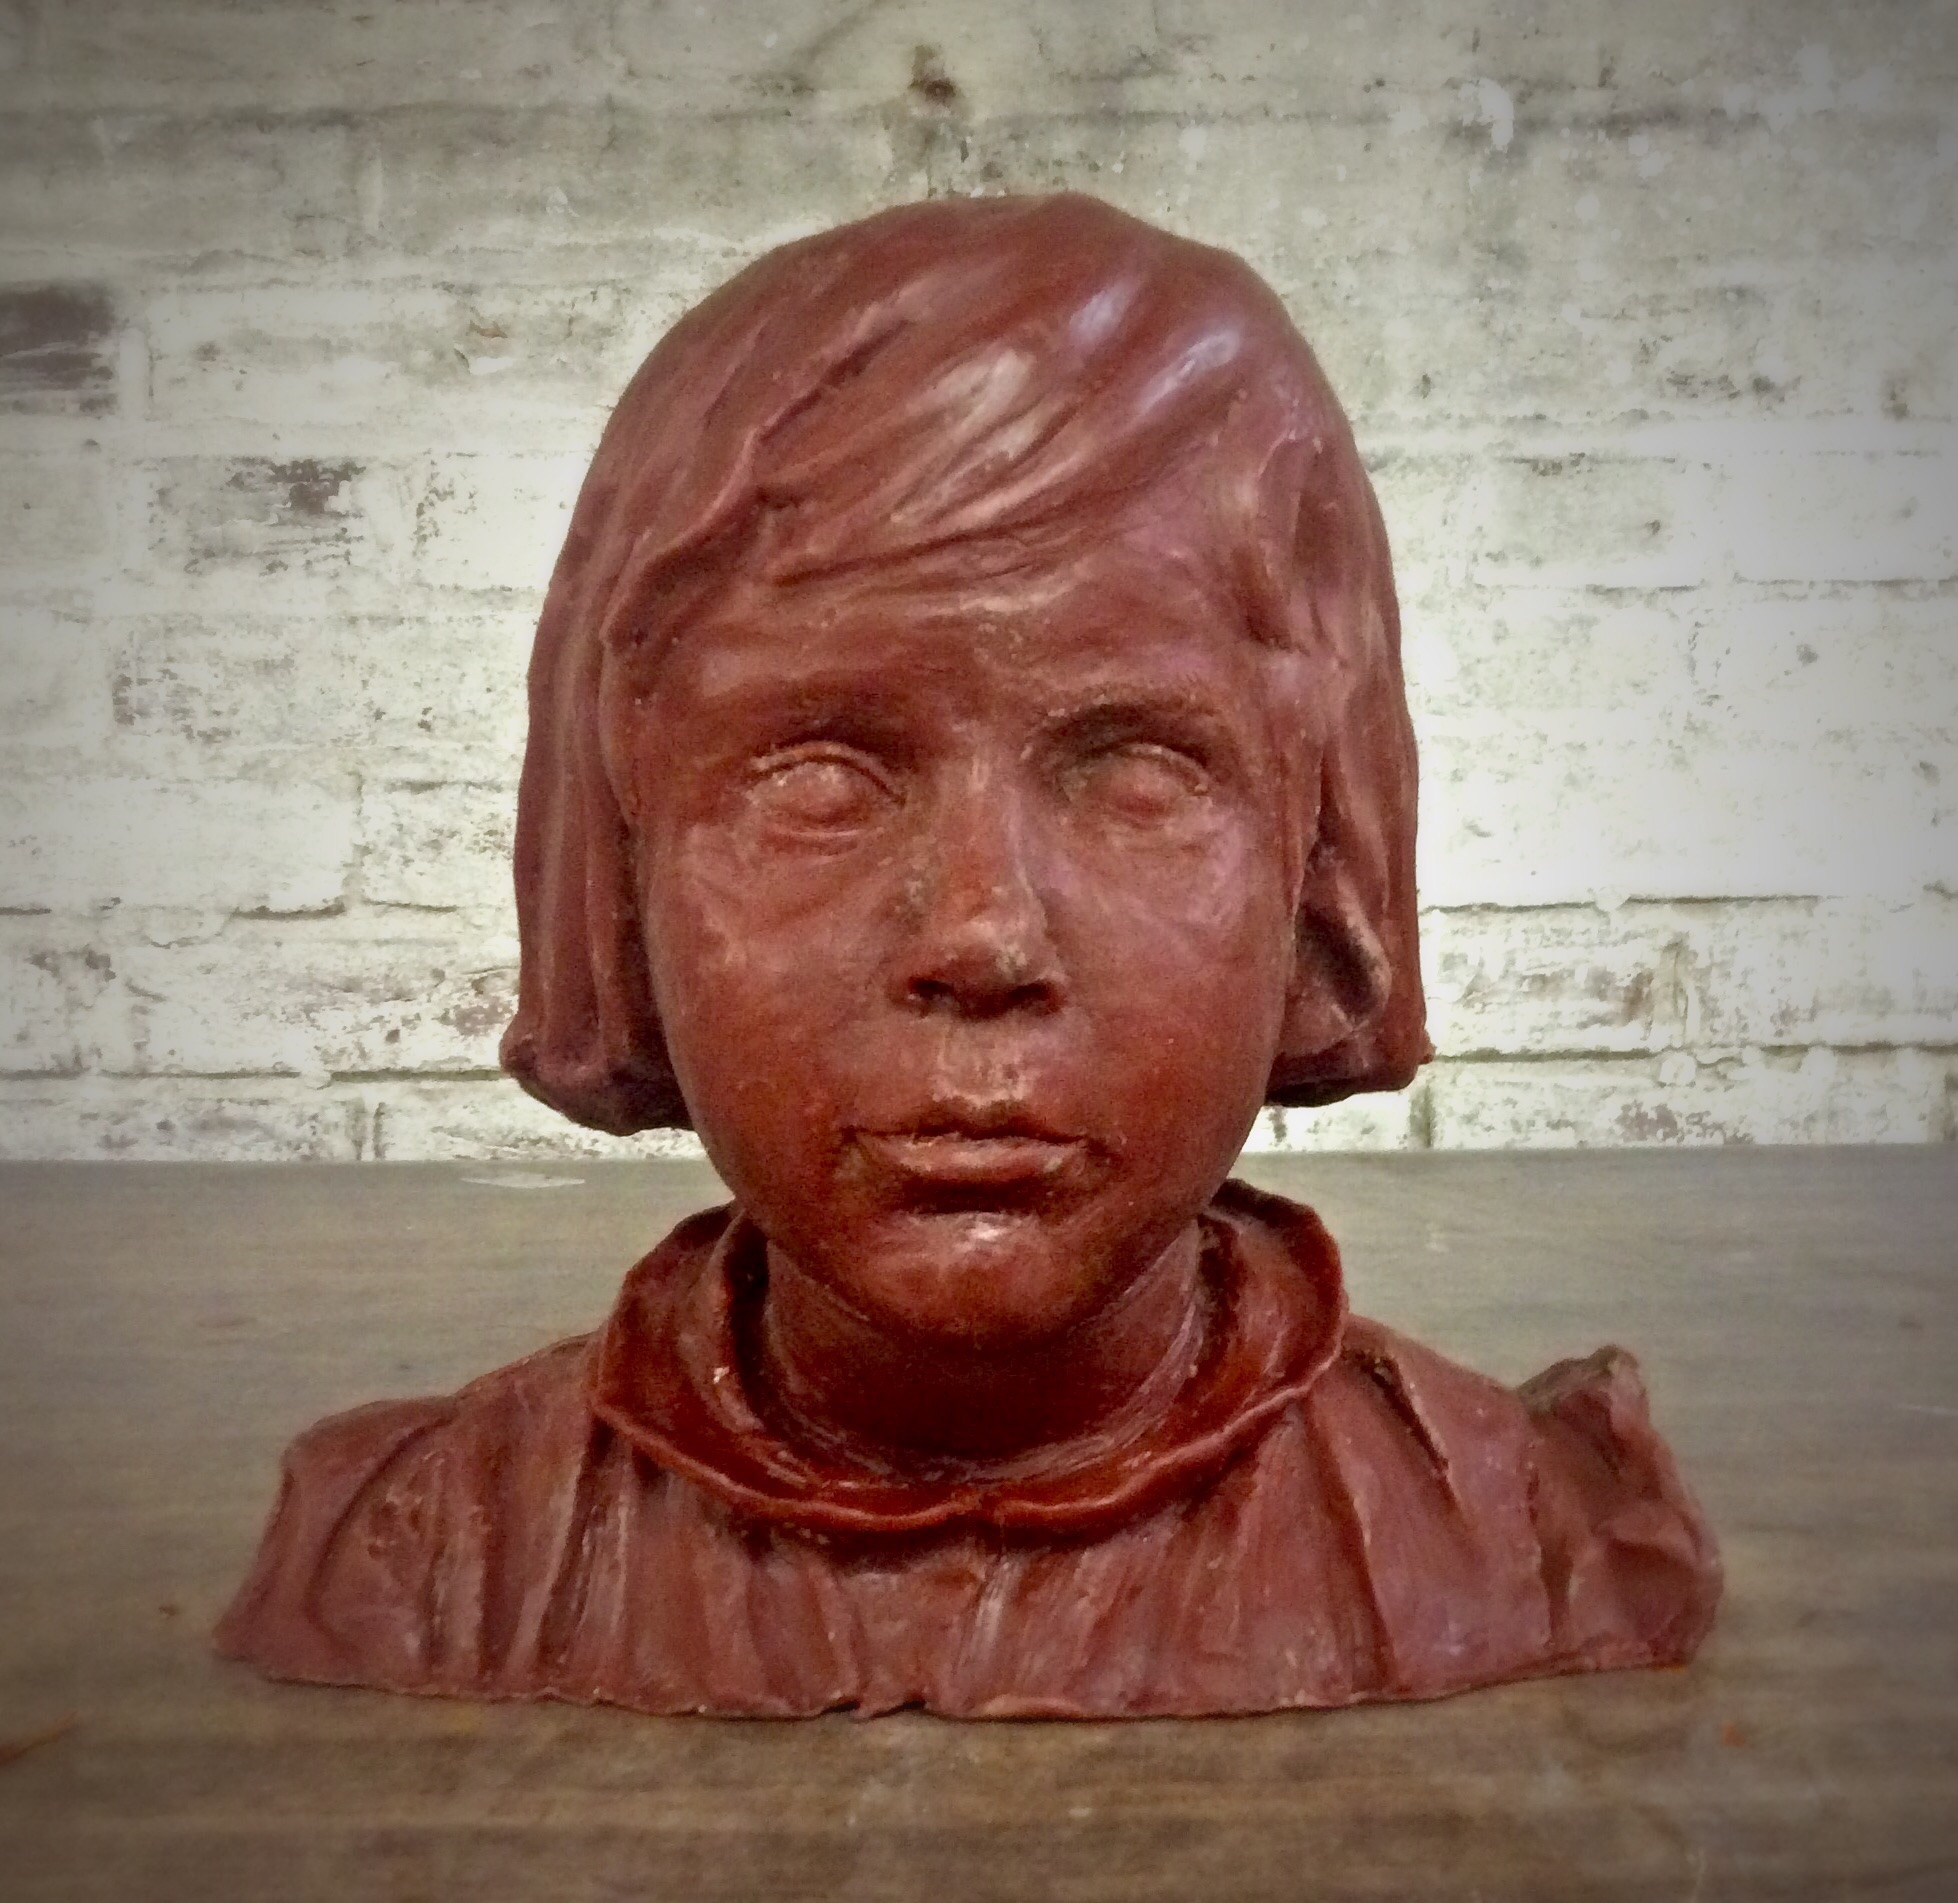 Karen Mcknney's father sculpted this bust of her as a child. The original clay was very old and dry, but stood up to the mold process. The wax came out great! Soon the sculpture will in bronze and last forever!